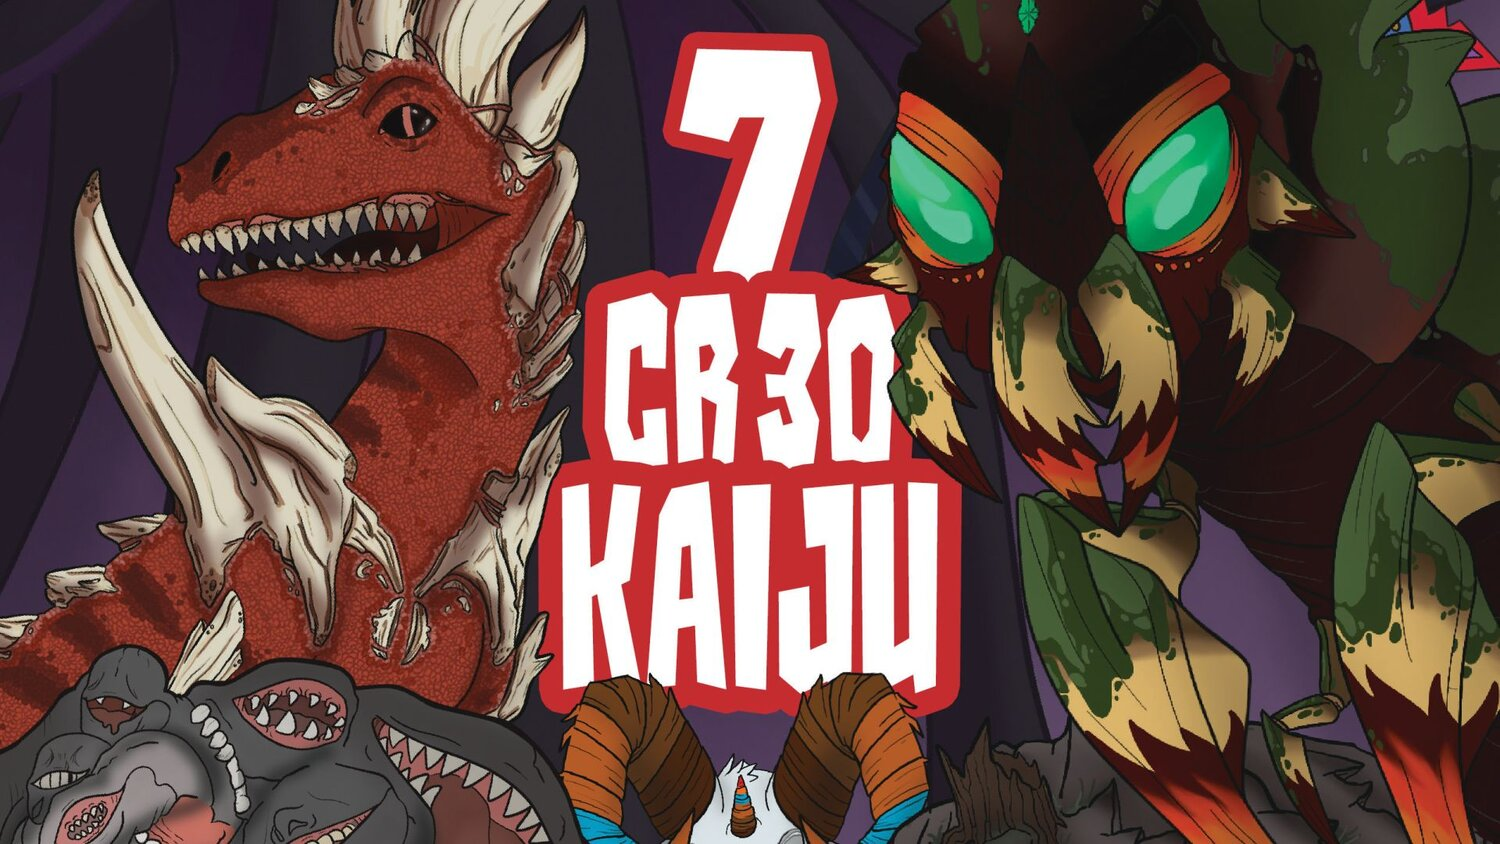 Challenge Almighty Kaiju in DUNGEONS & DRAGONS with TITANS OF THE ANCIENT WORLD